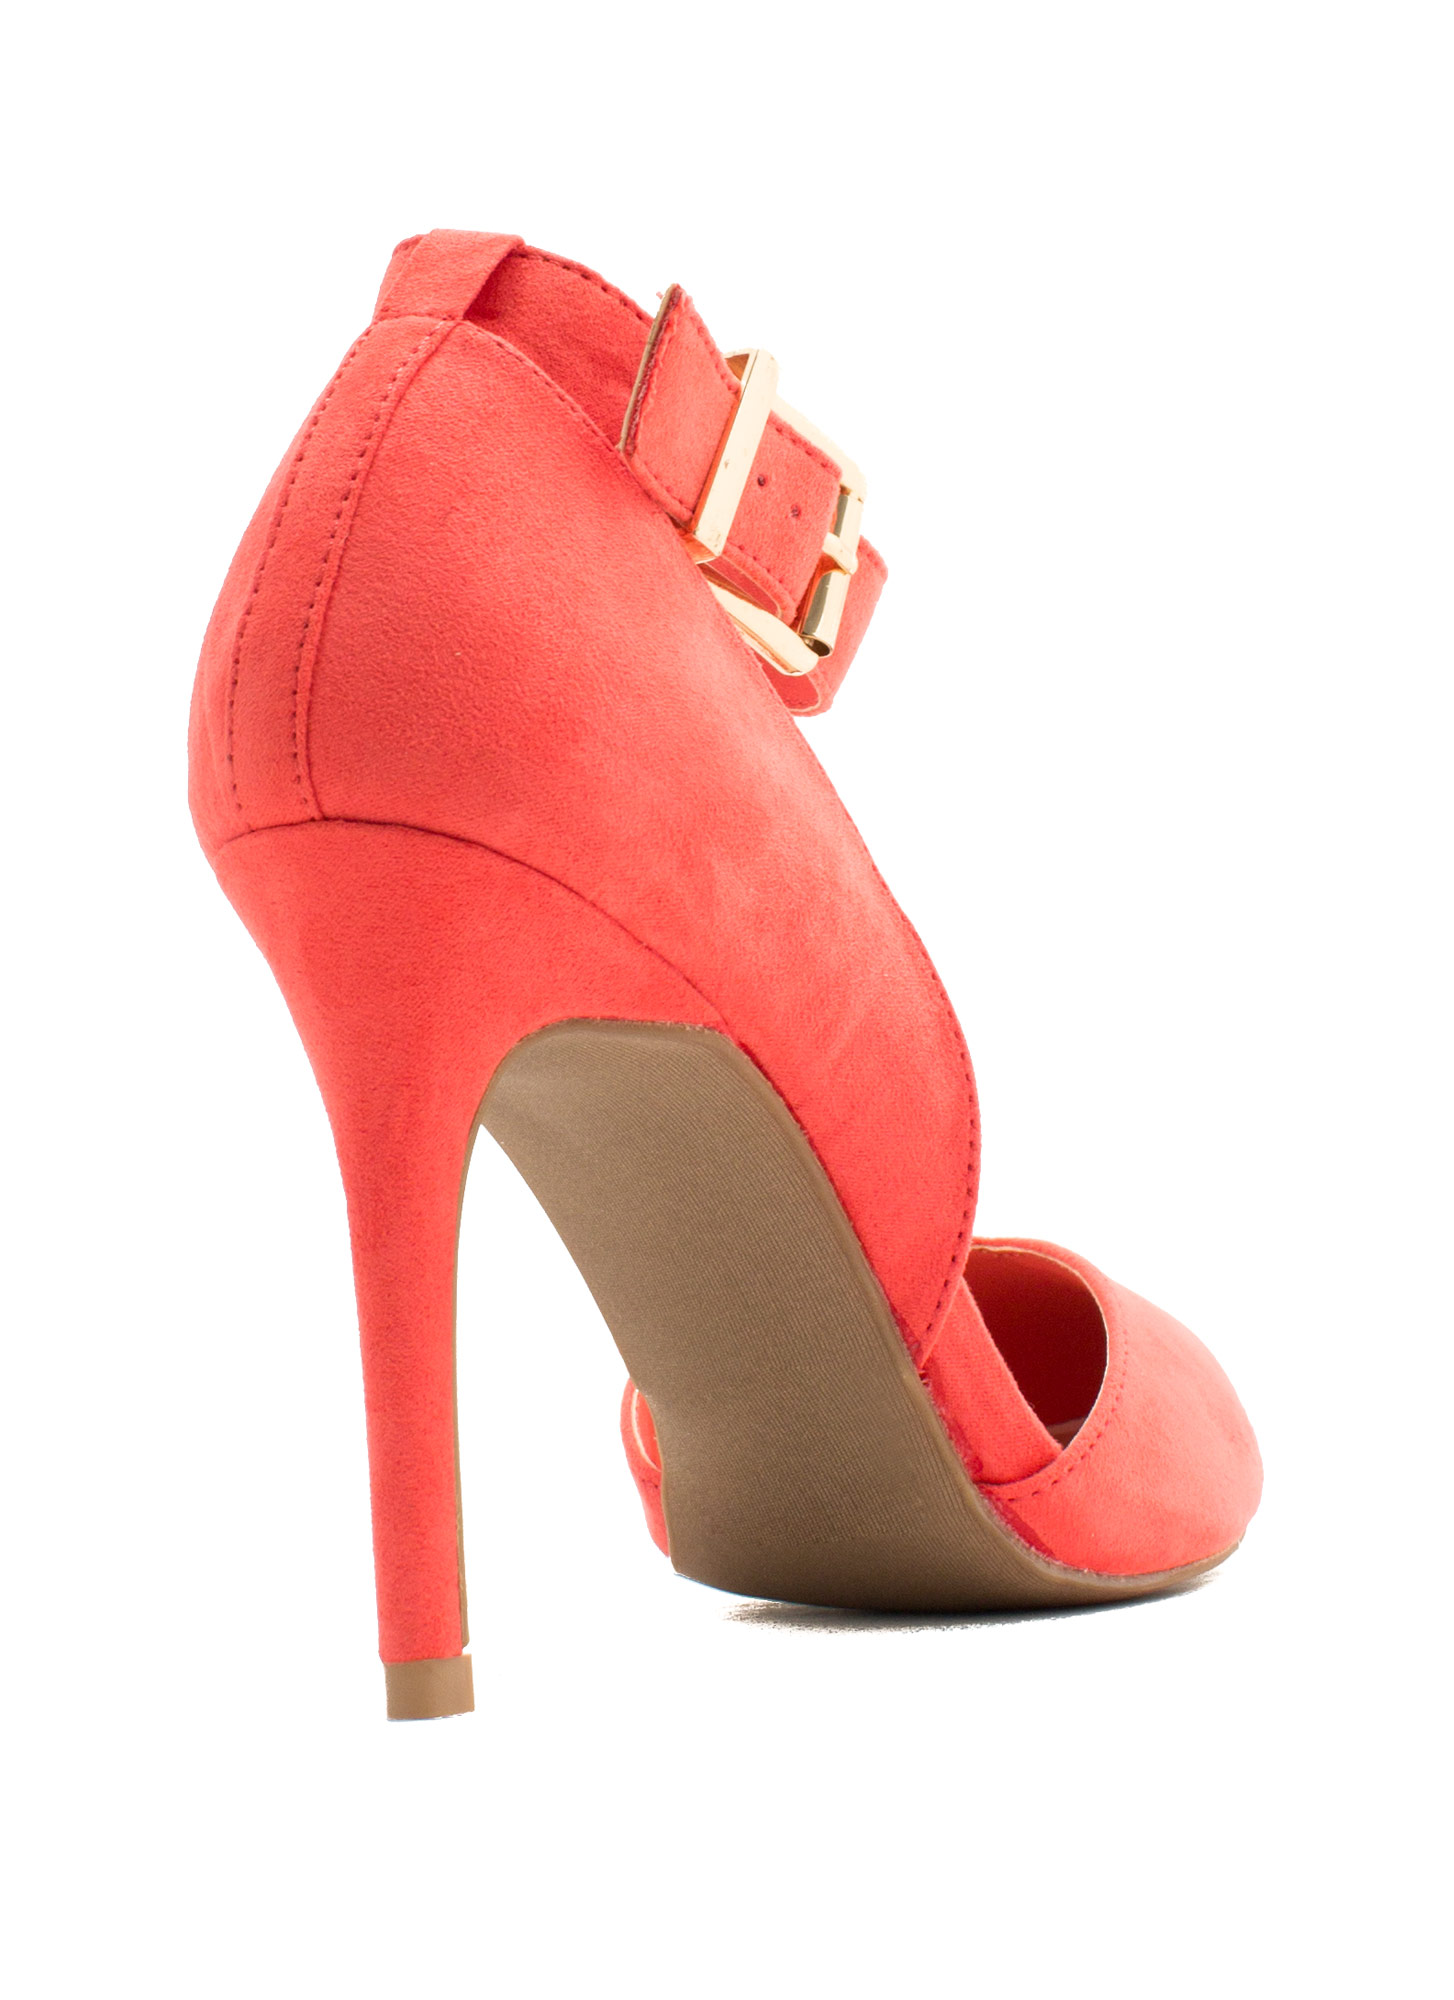 Fancy-Free Faux Suede Heels DKCORAL